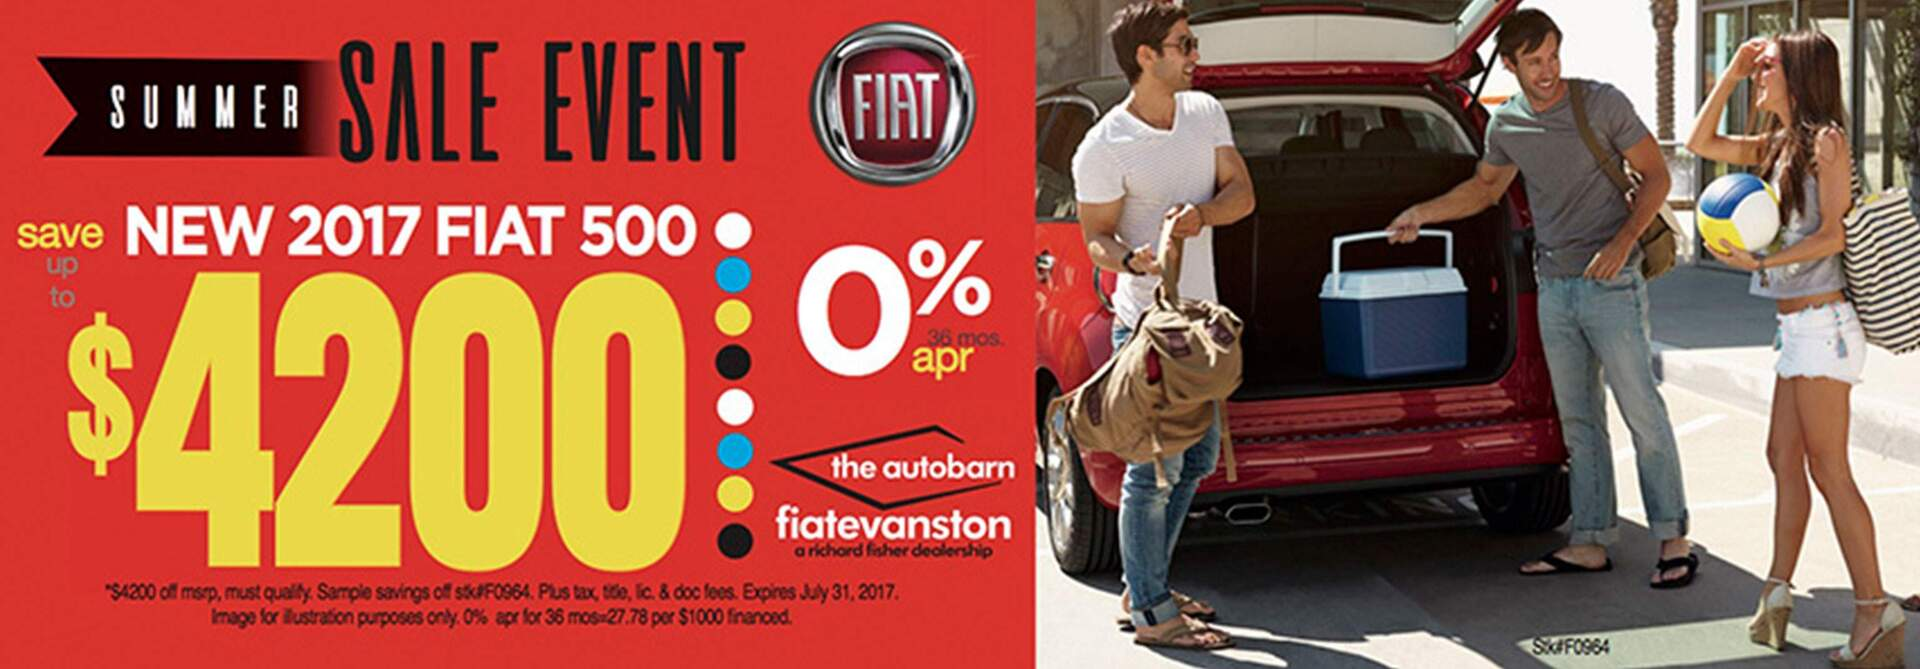 $4,200 OFF on the nEw FiAt 500 At The Autobarn Fiat